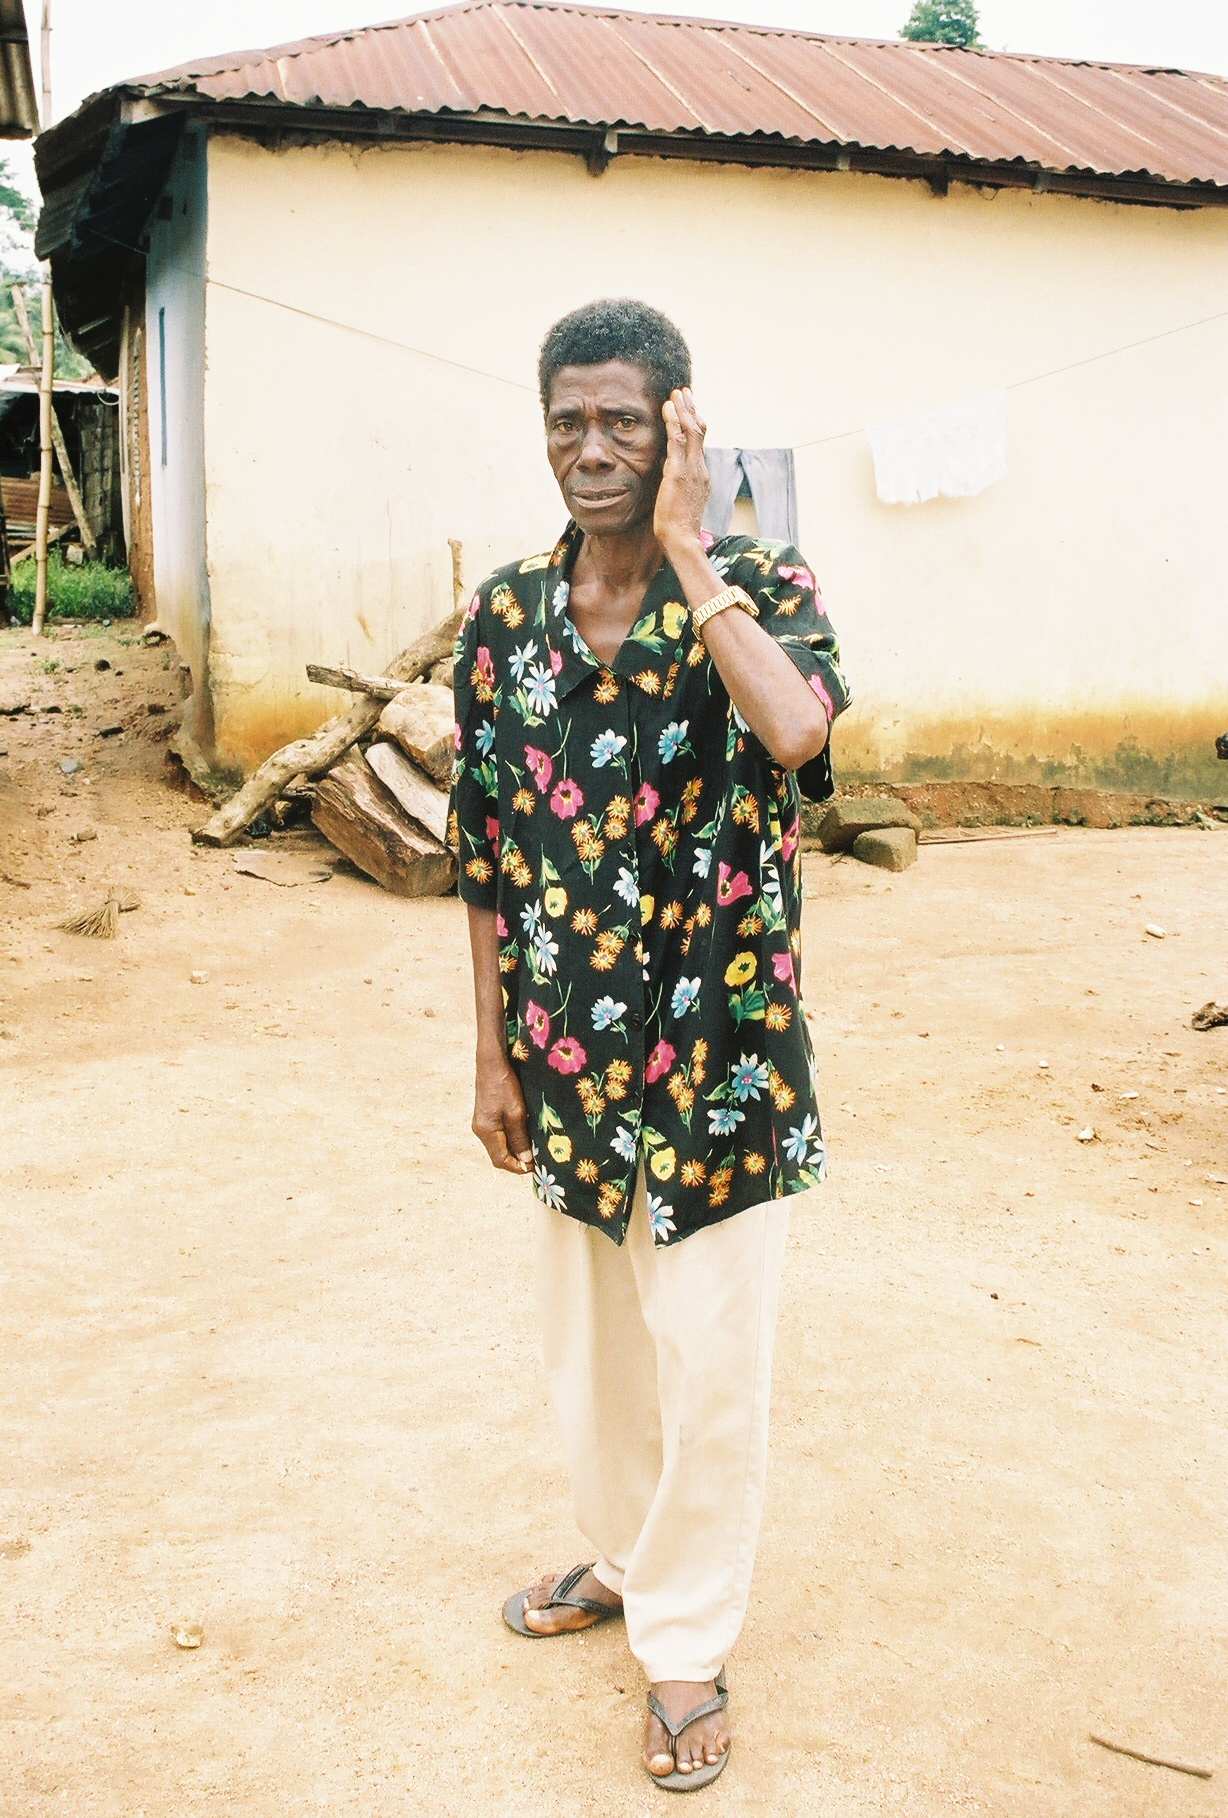 This man was healed of deafness in a crusade in Africa.